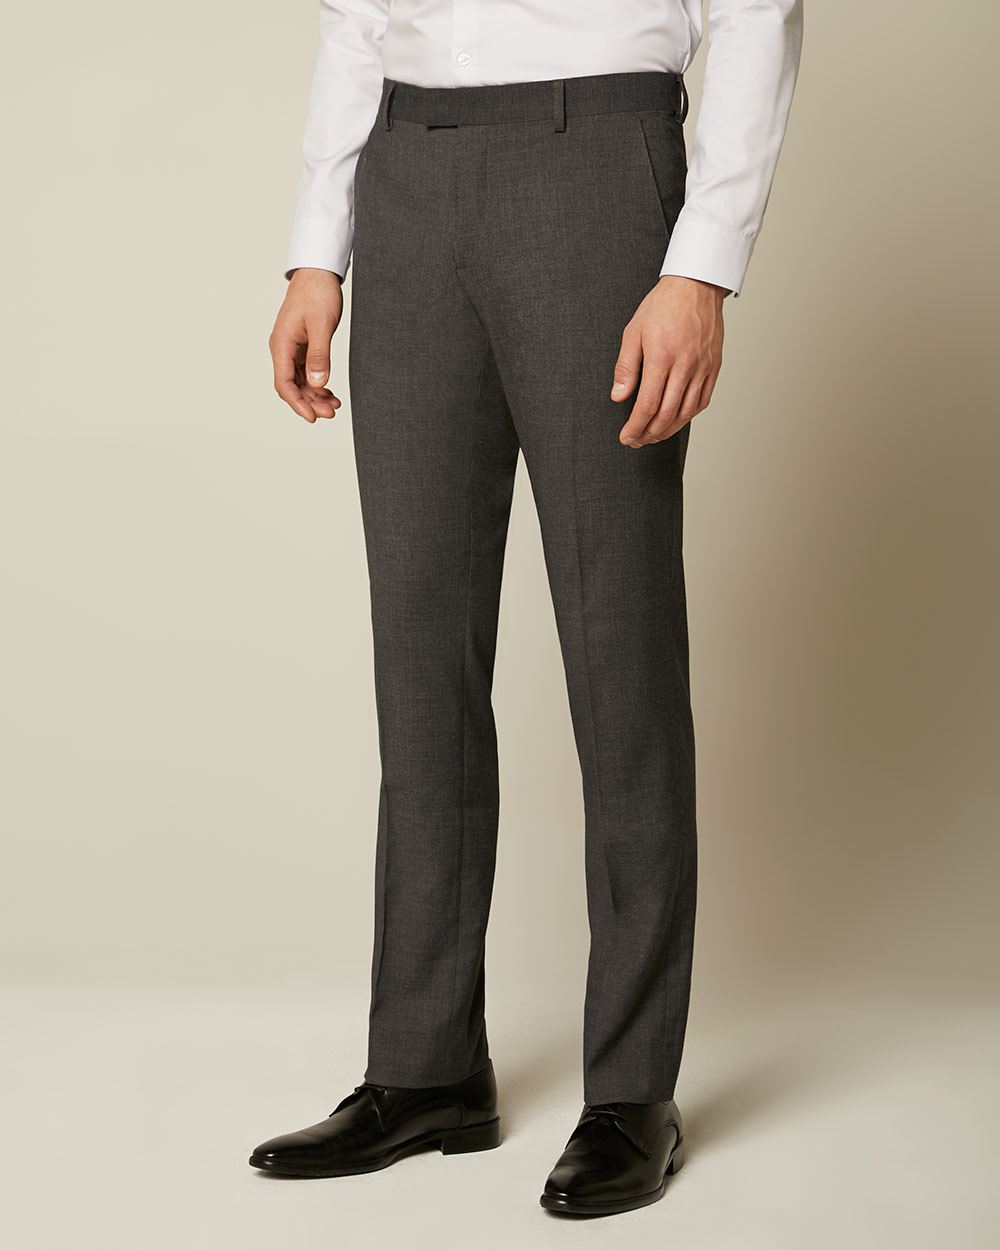 Essential Tailored Fit Dark Grey suit Pant - Tall